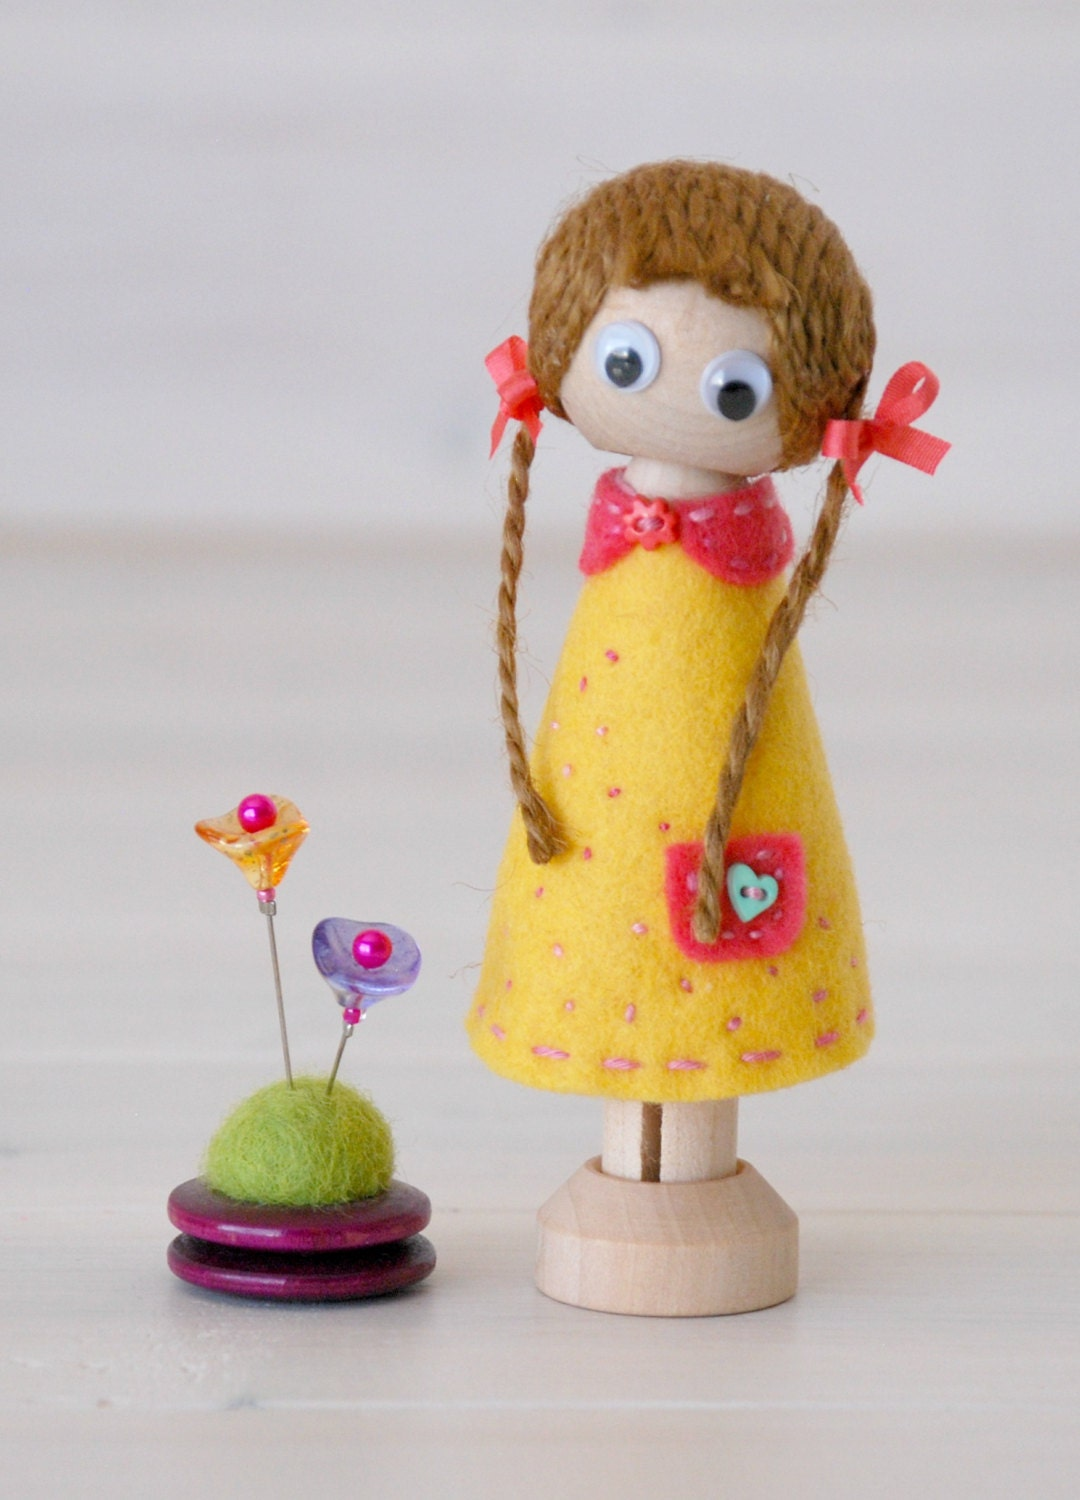 DIY Clothespin Doll - 30 Wooden Dolls - Wooden Clothespins ...